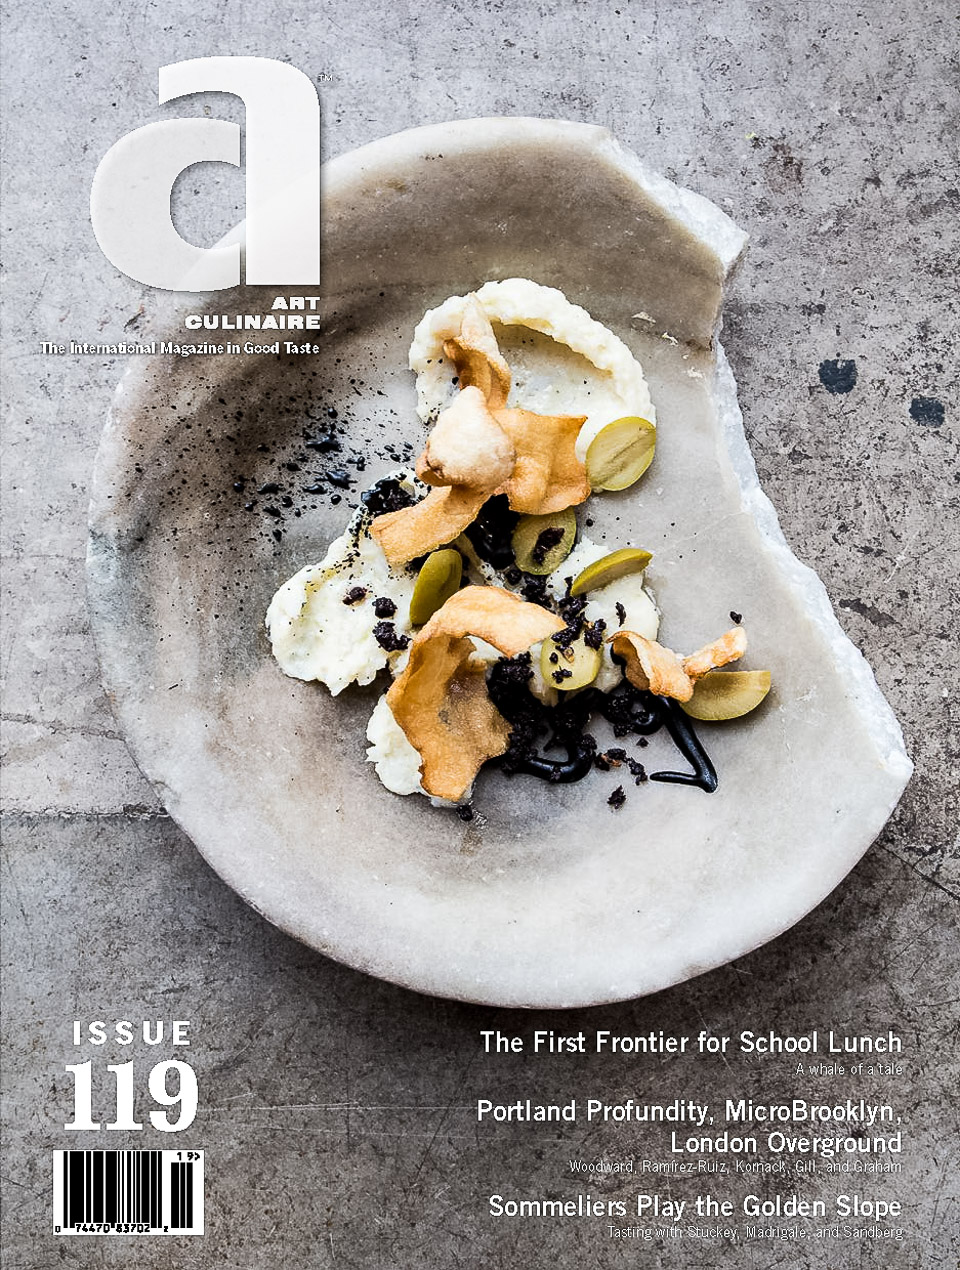 Art Culinaire Magazine 119 Cover |www.jonathanthompsonphotography.com